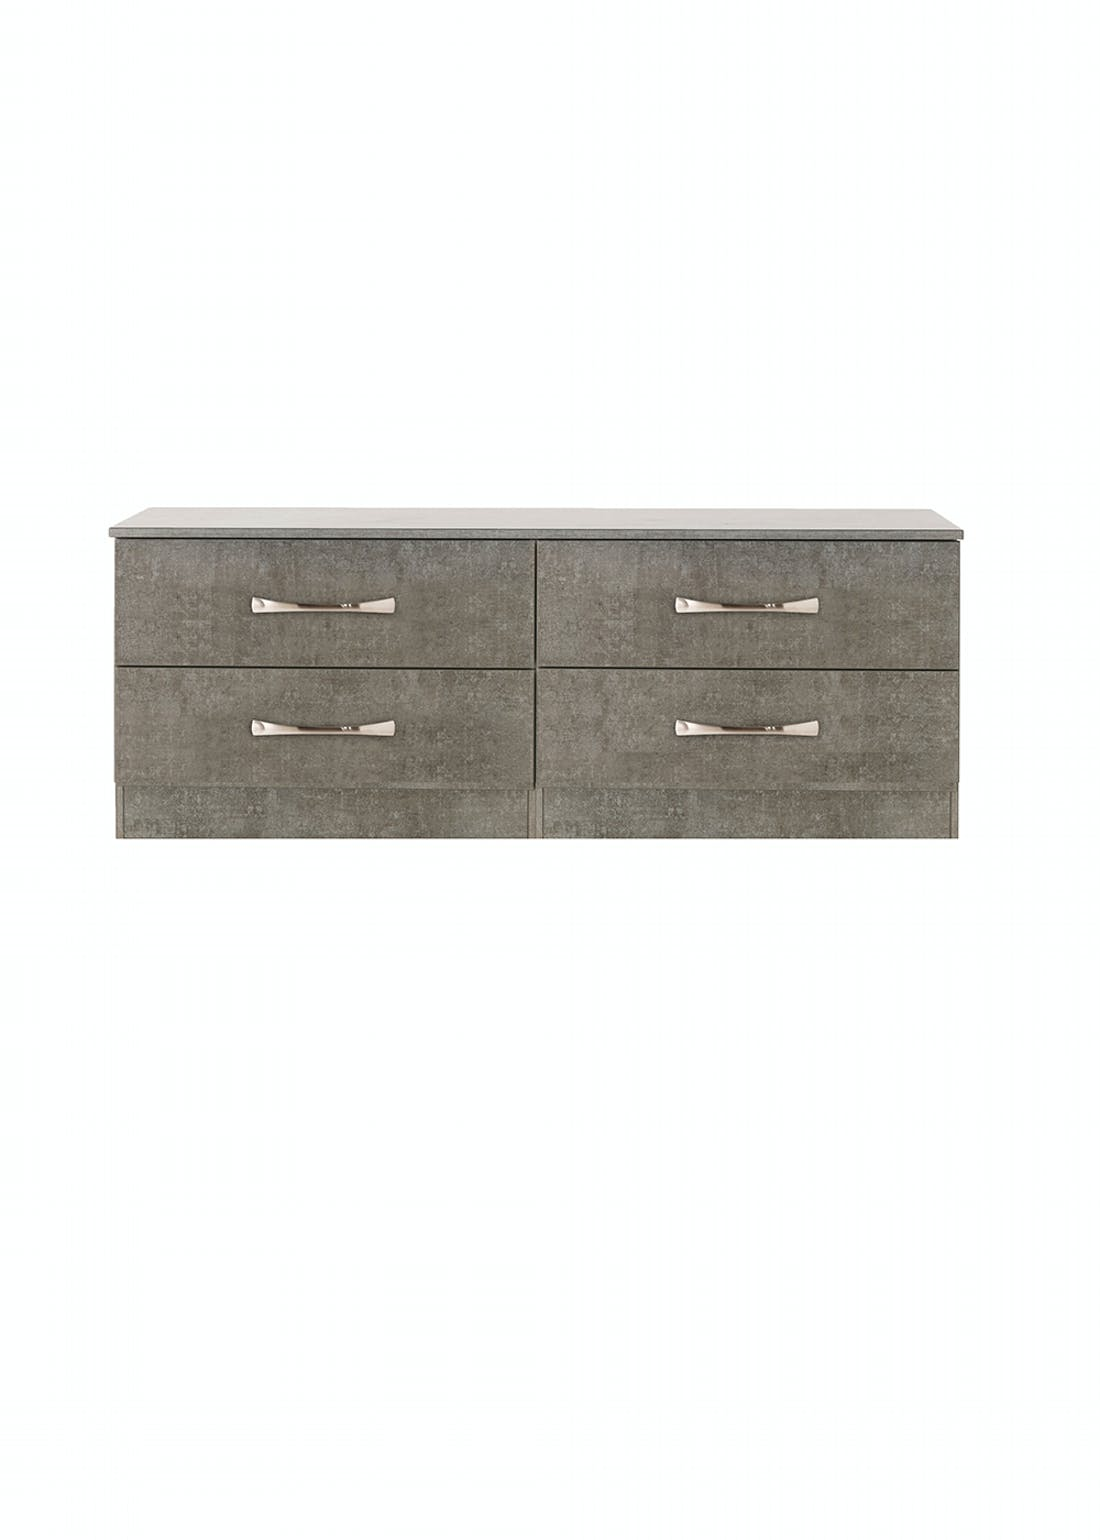 Swift Roma 4 Drawer End of Bed Chest (50.5cm x 112cm x 41.5cm)